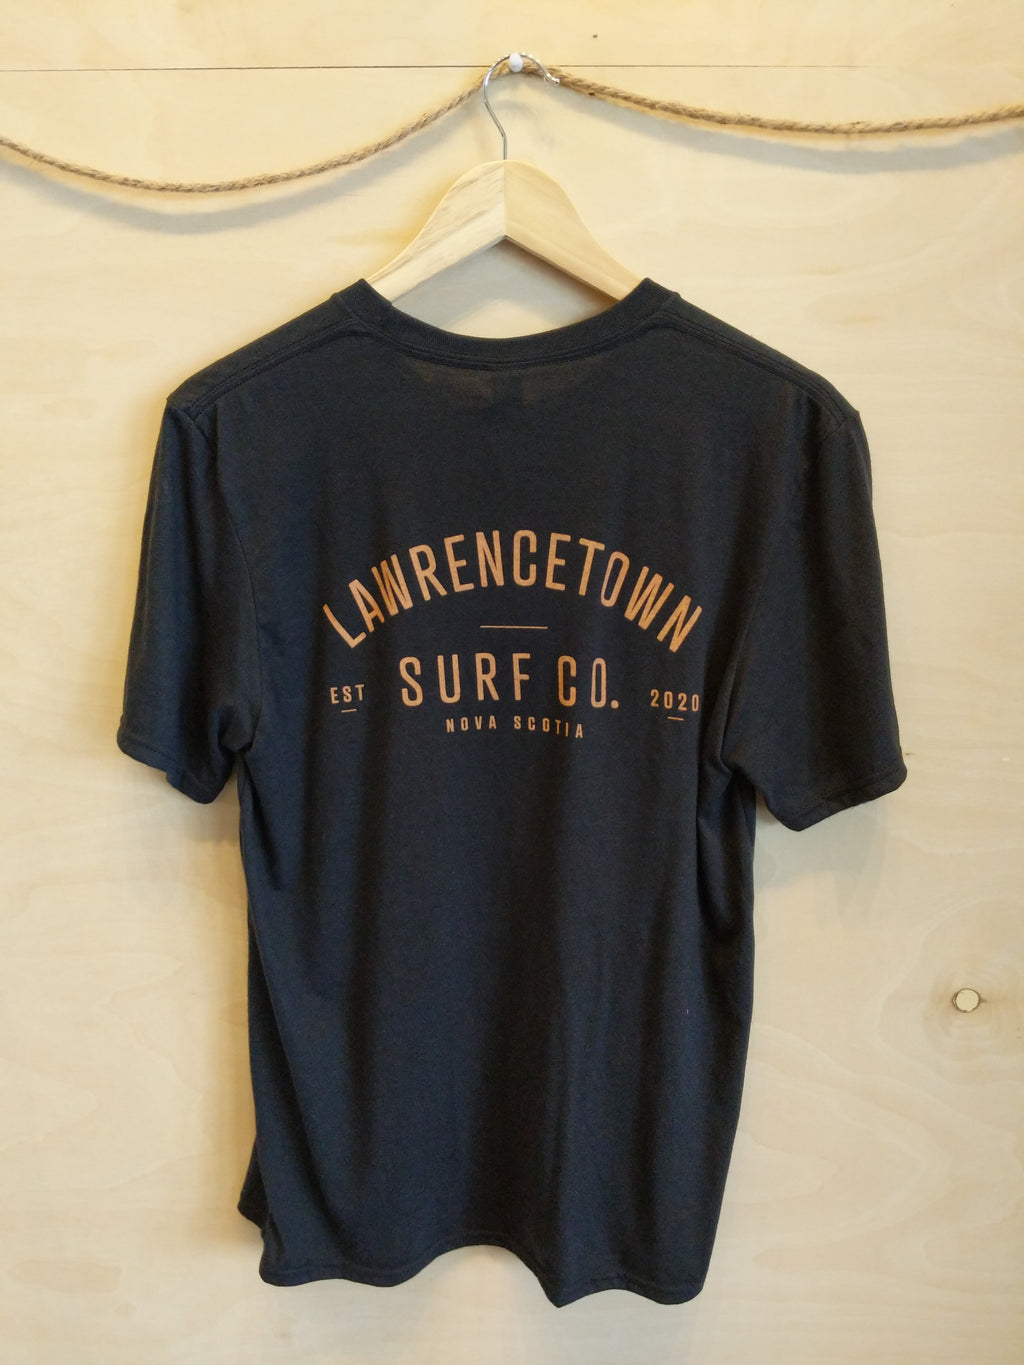 Lawrencetown Surf Co. Adult Tee - Black / Peach